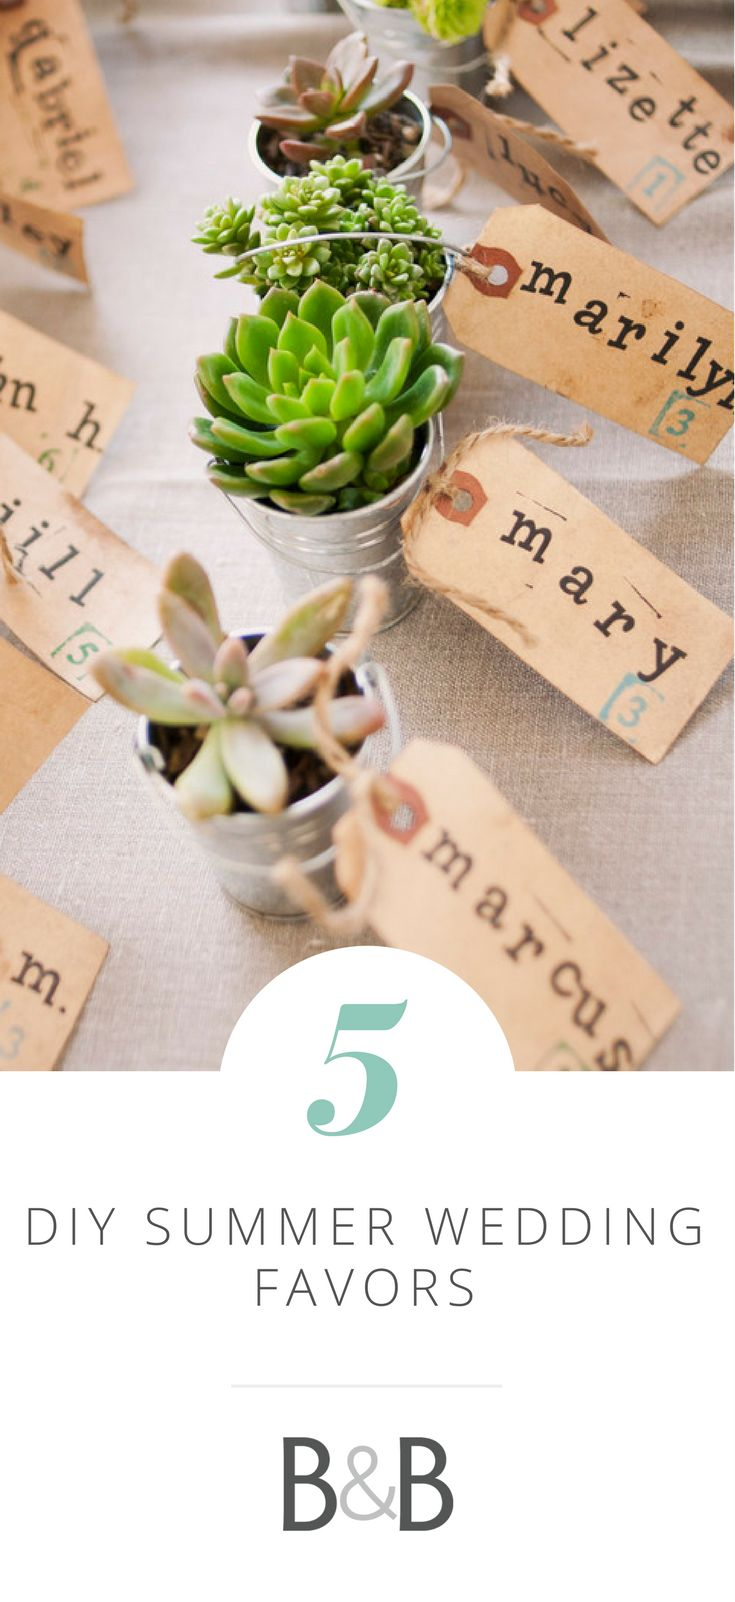 succulent wedding favors succulent wedding favors 25 Best Ideas about Succulent Wedding Favors on Pinterest Succulent favors Wedding favour plants and Succulent party favors